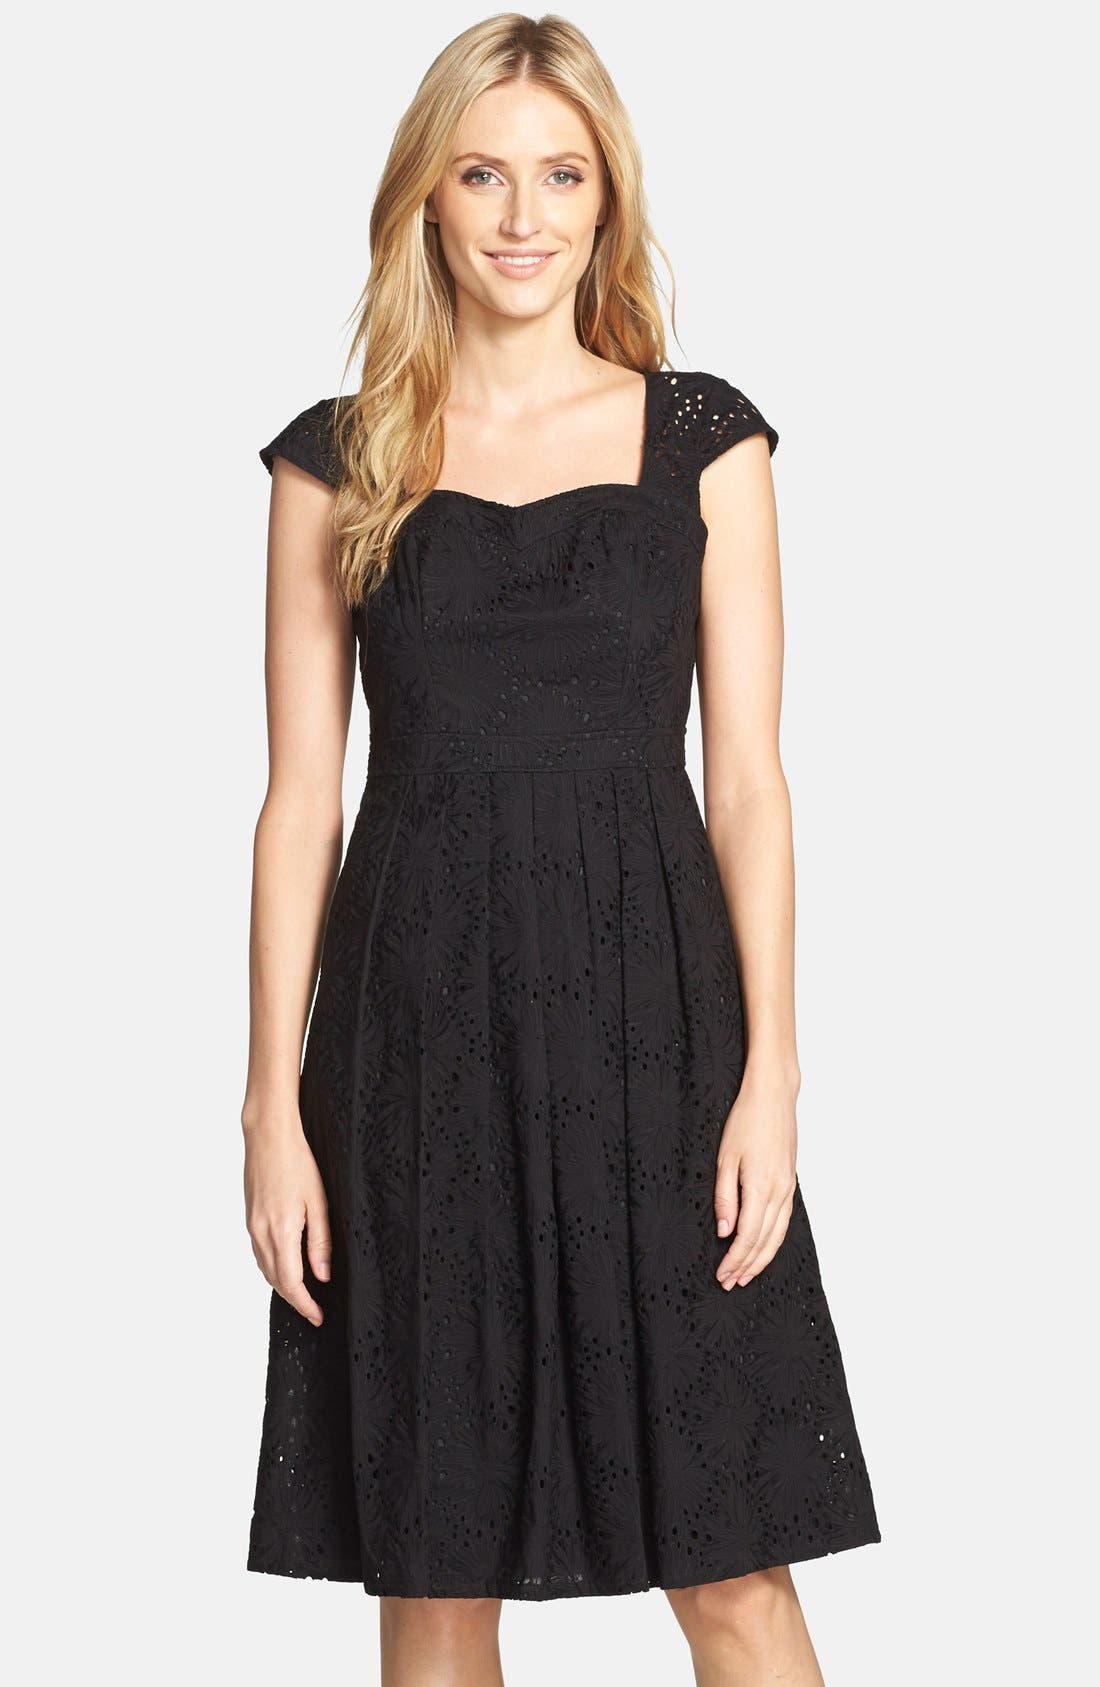 Alternate Image 1 Selected - Adrianna Papell Eyelet Fit & Flare Dress